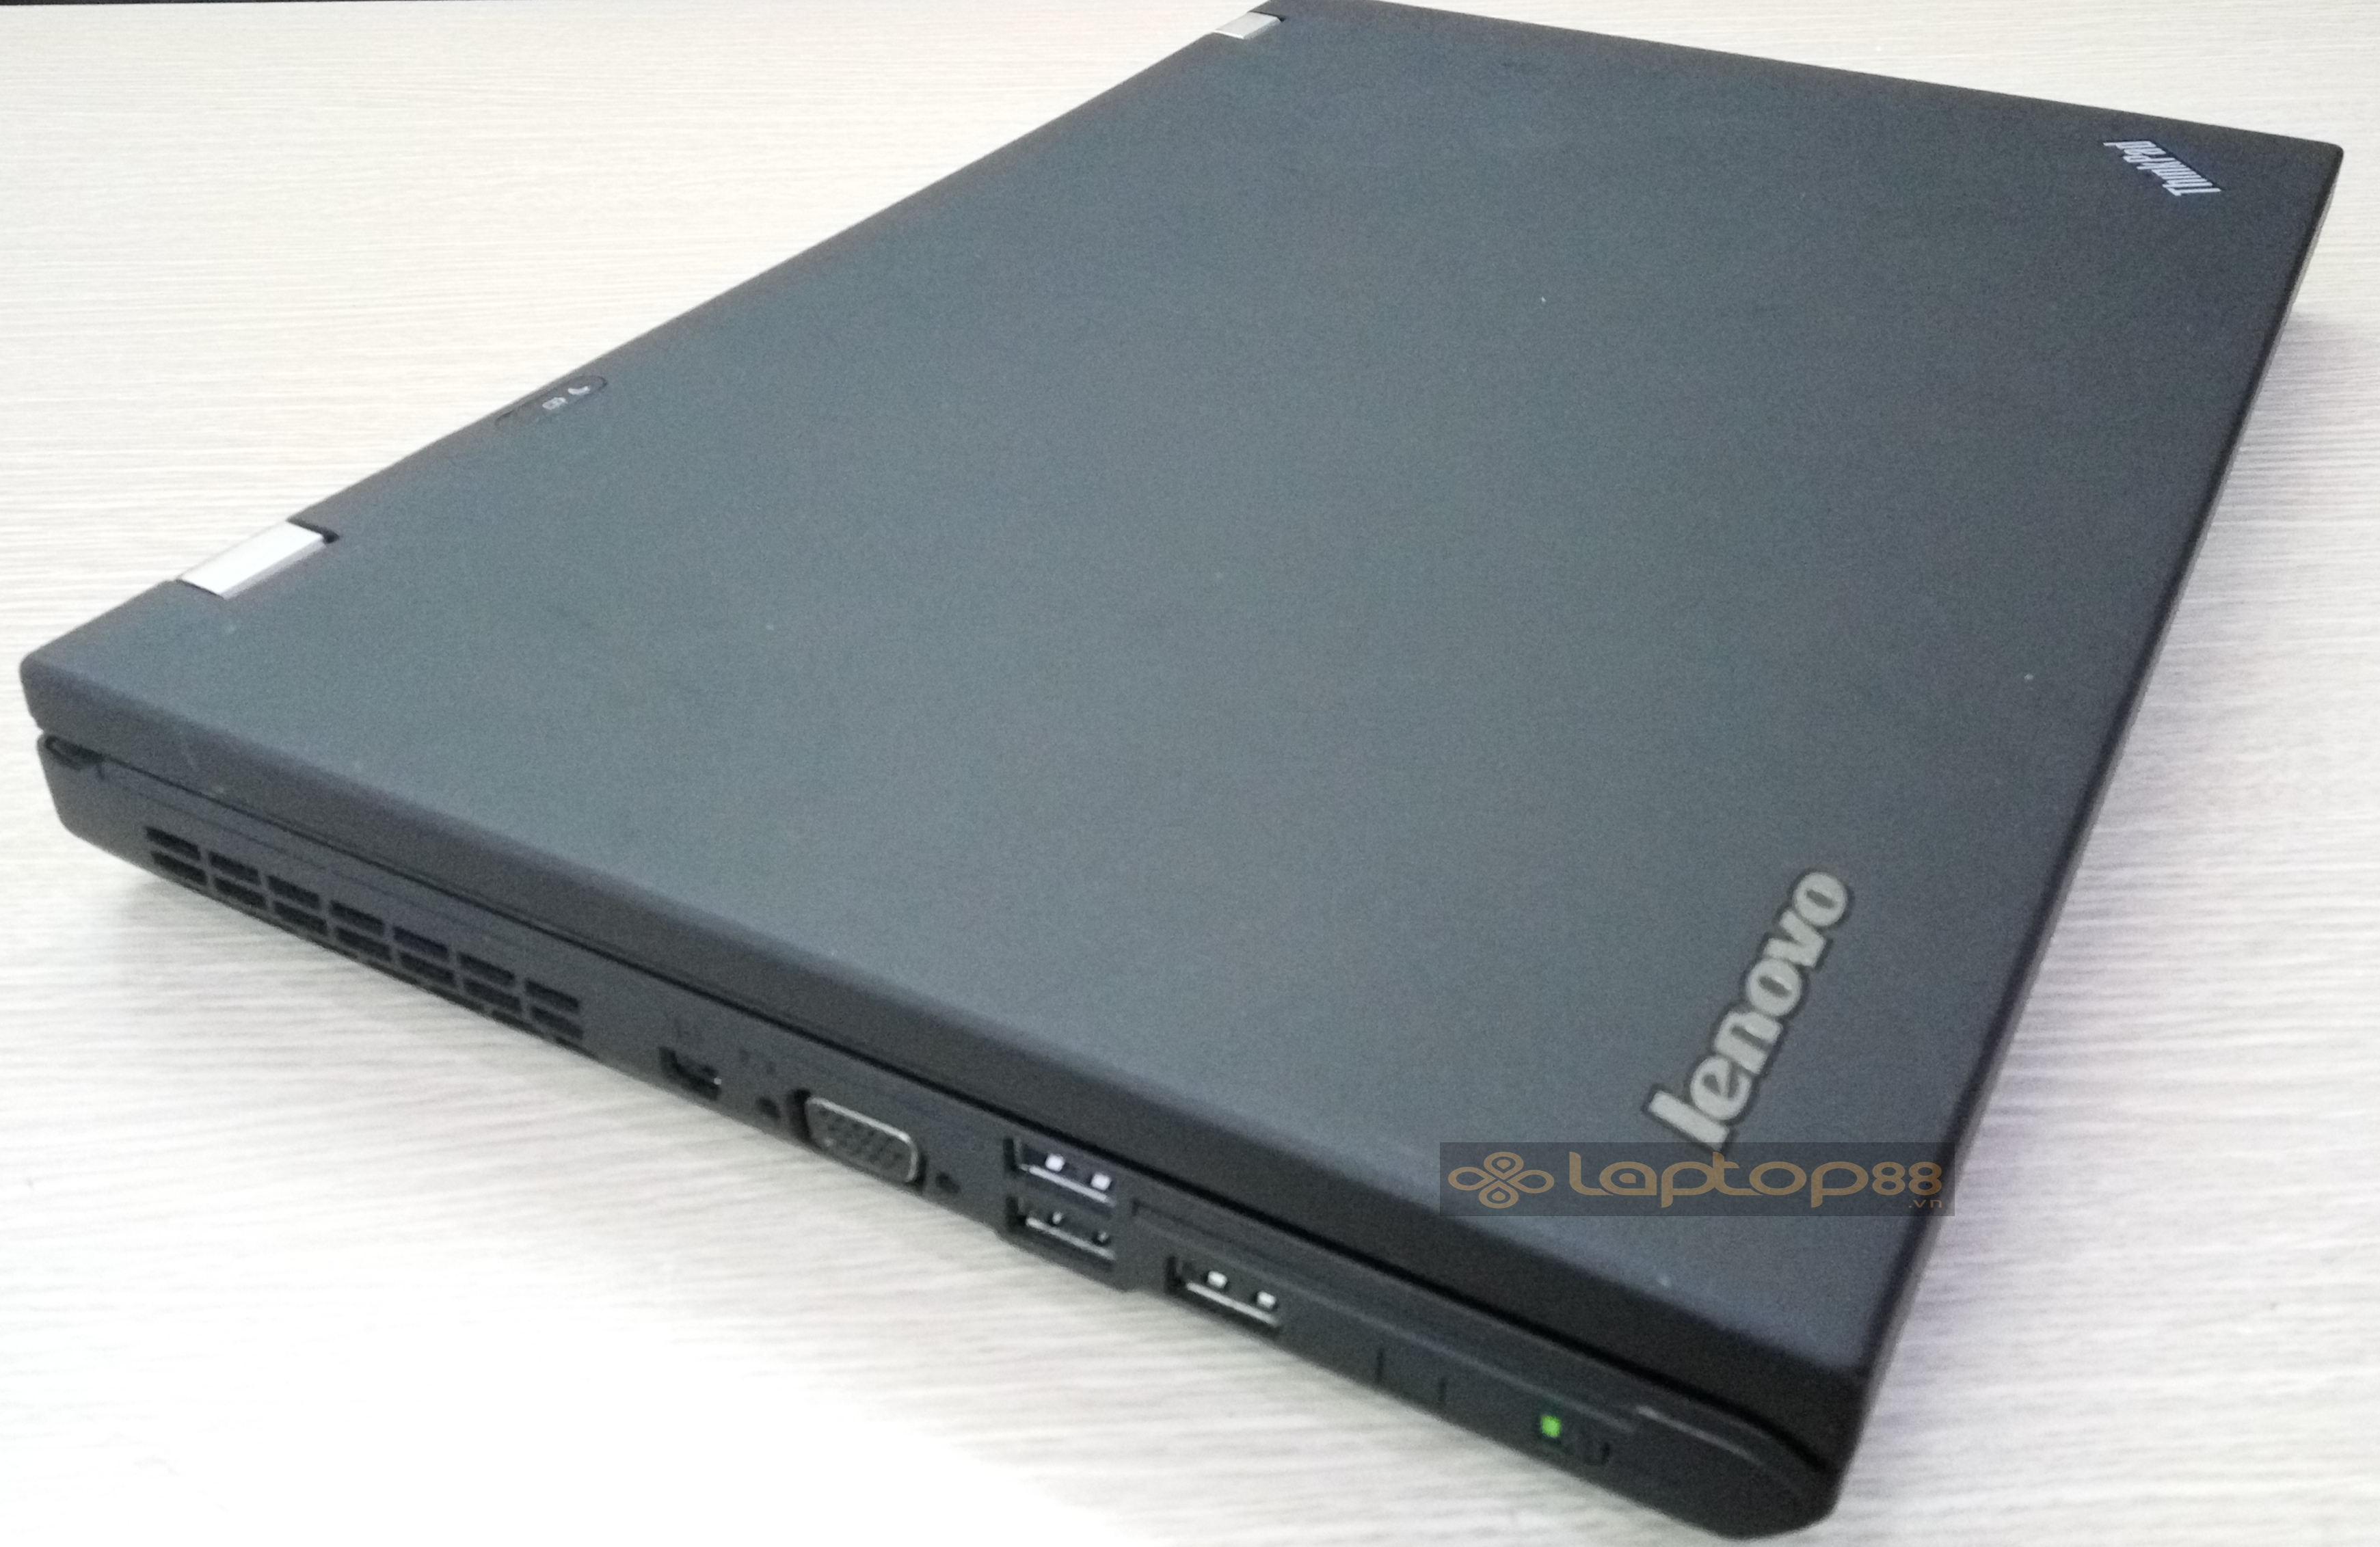 Laptop cũ Lenovo Thinkpad T530 ( Core i5 3320M, 4GB DDR3, 250GB SATA, Intel HD Graphics 4000, 15,6 inch LED HD+2